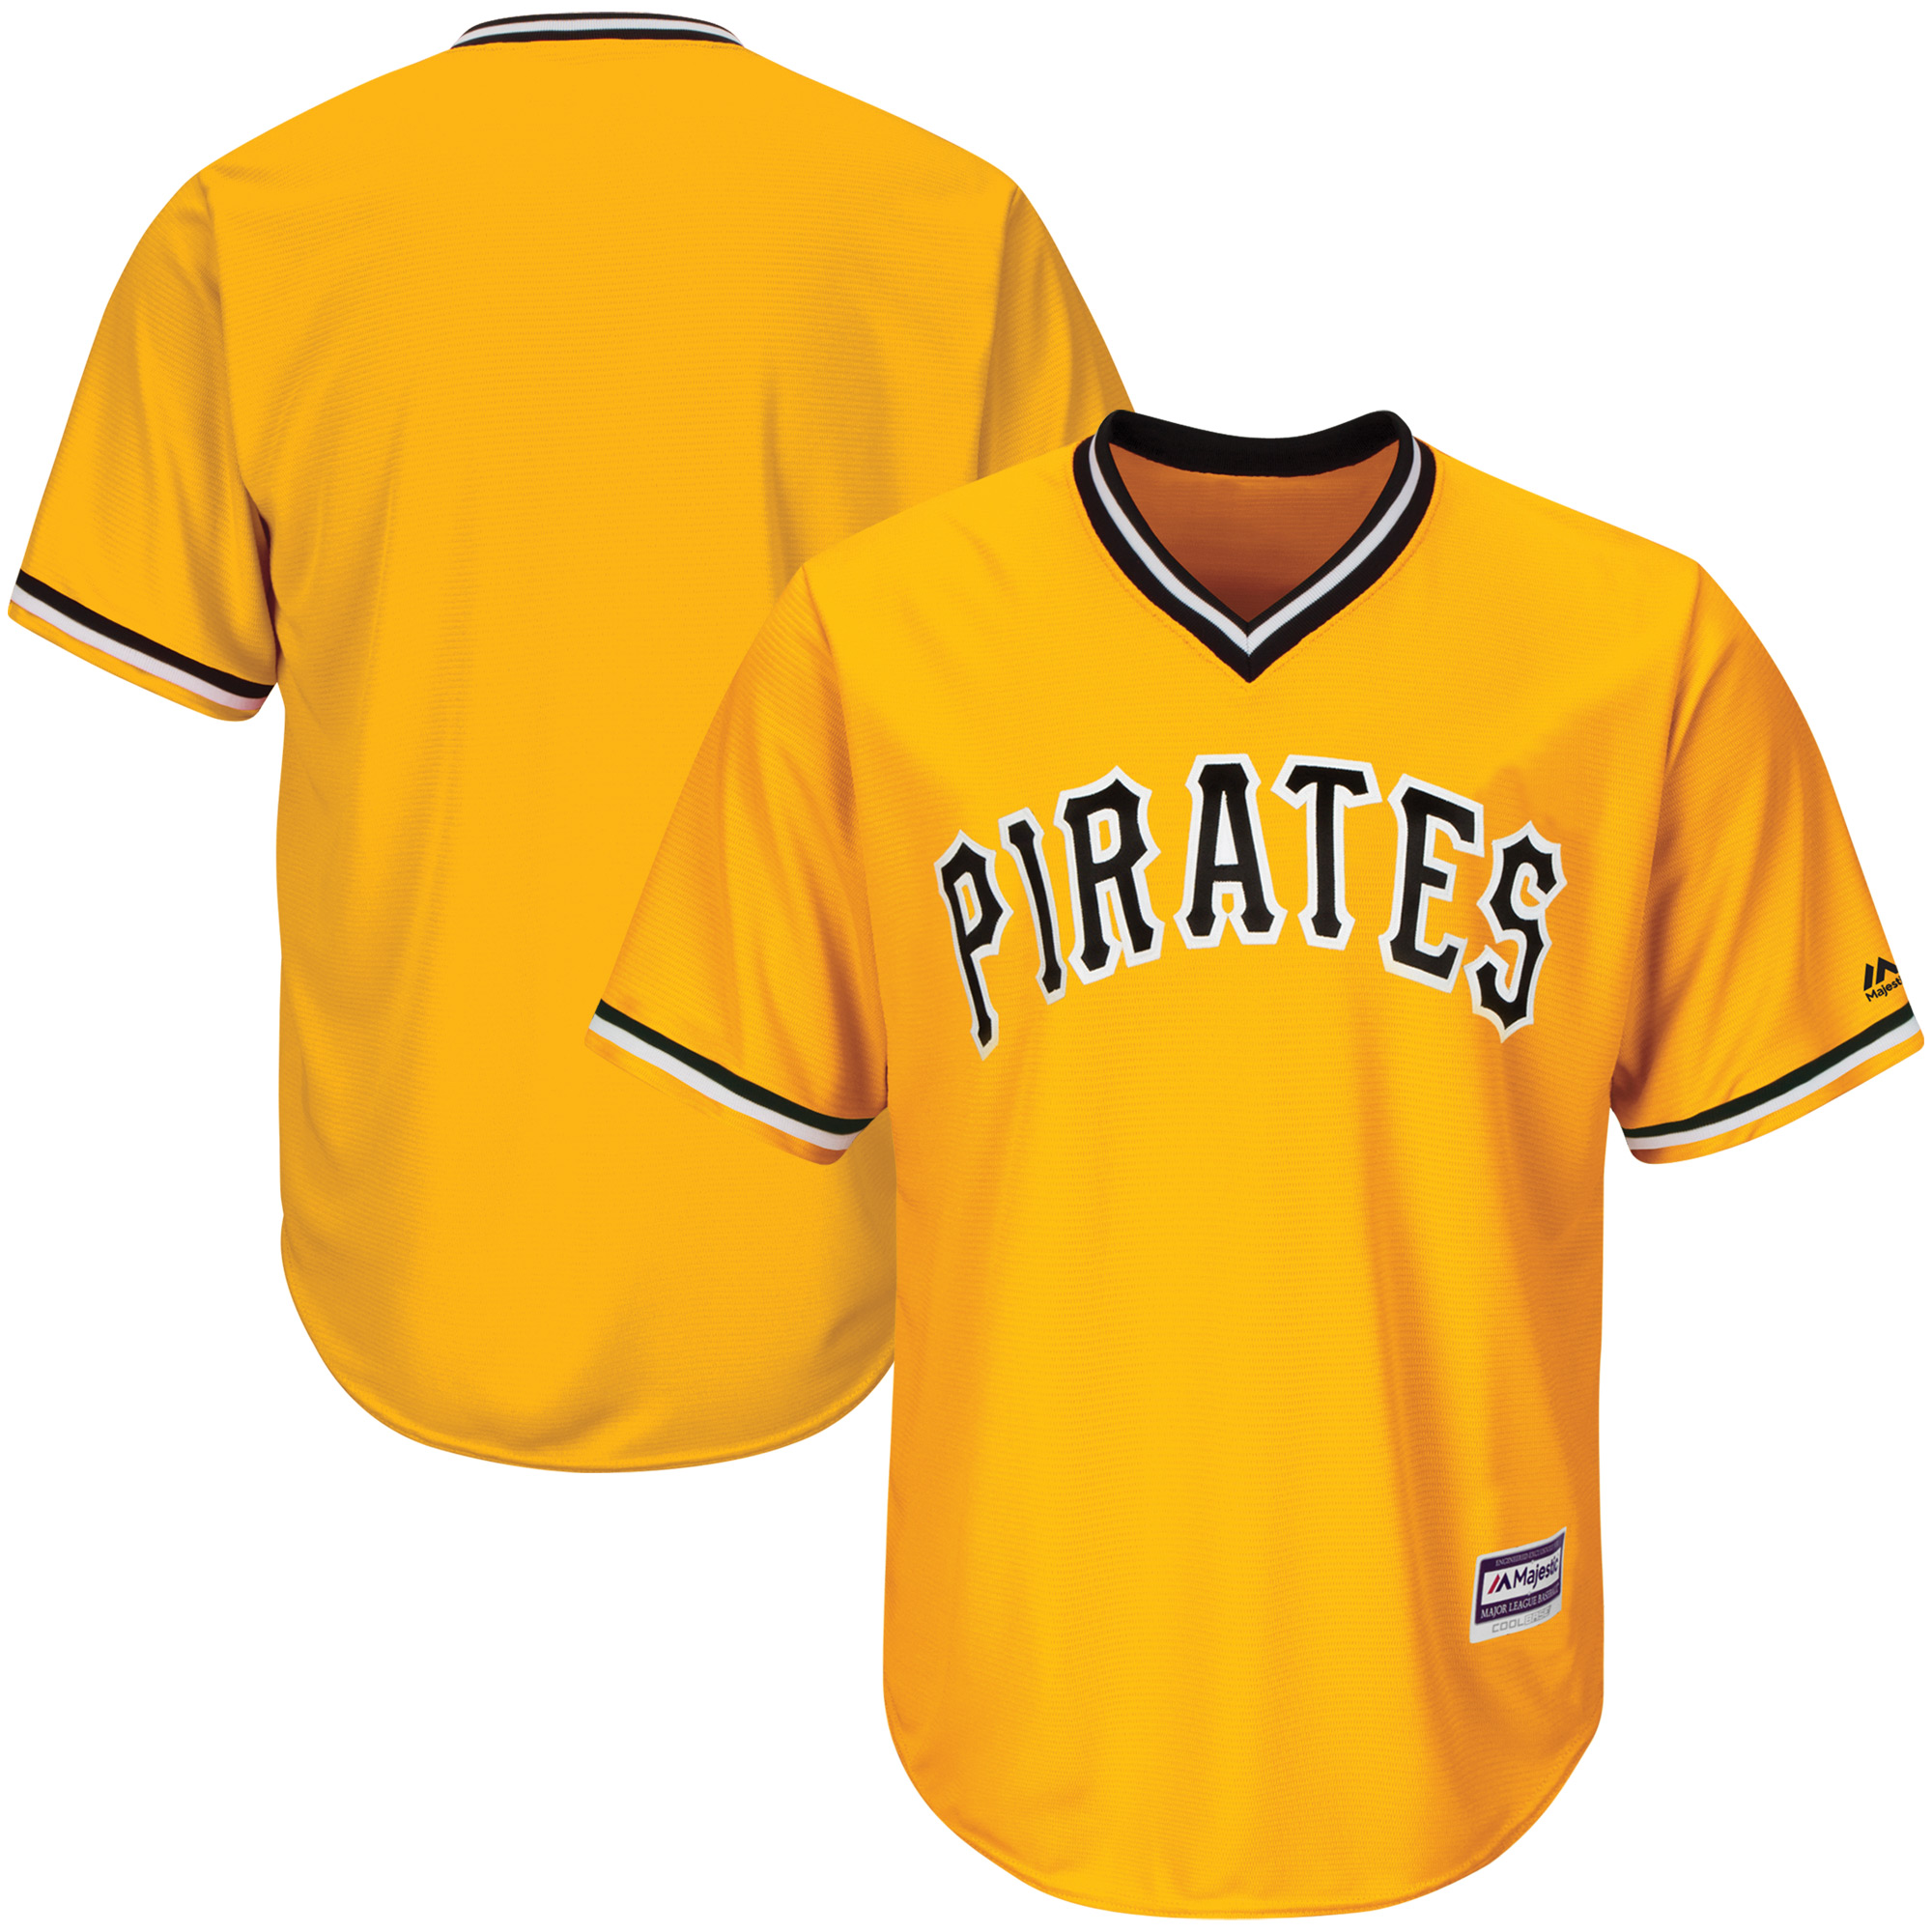 Pittsburgh Pirates Majestic Youth Official Cool Base Team Replica Jersey - Gold